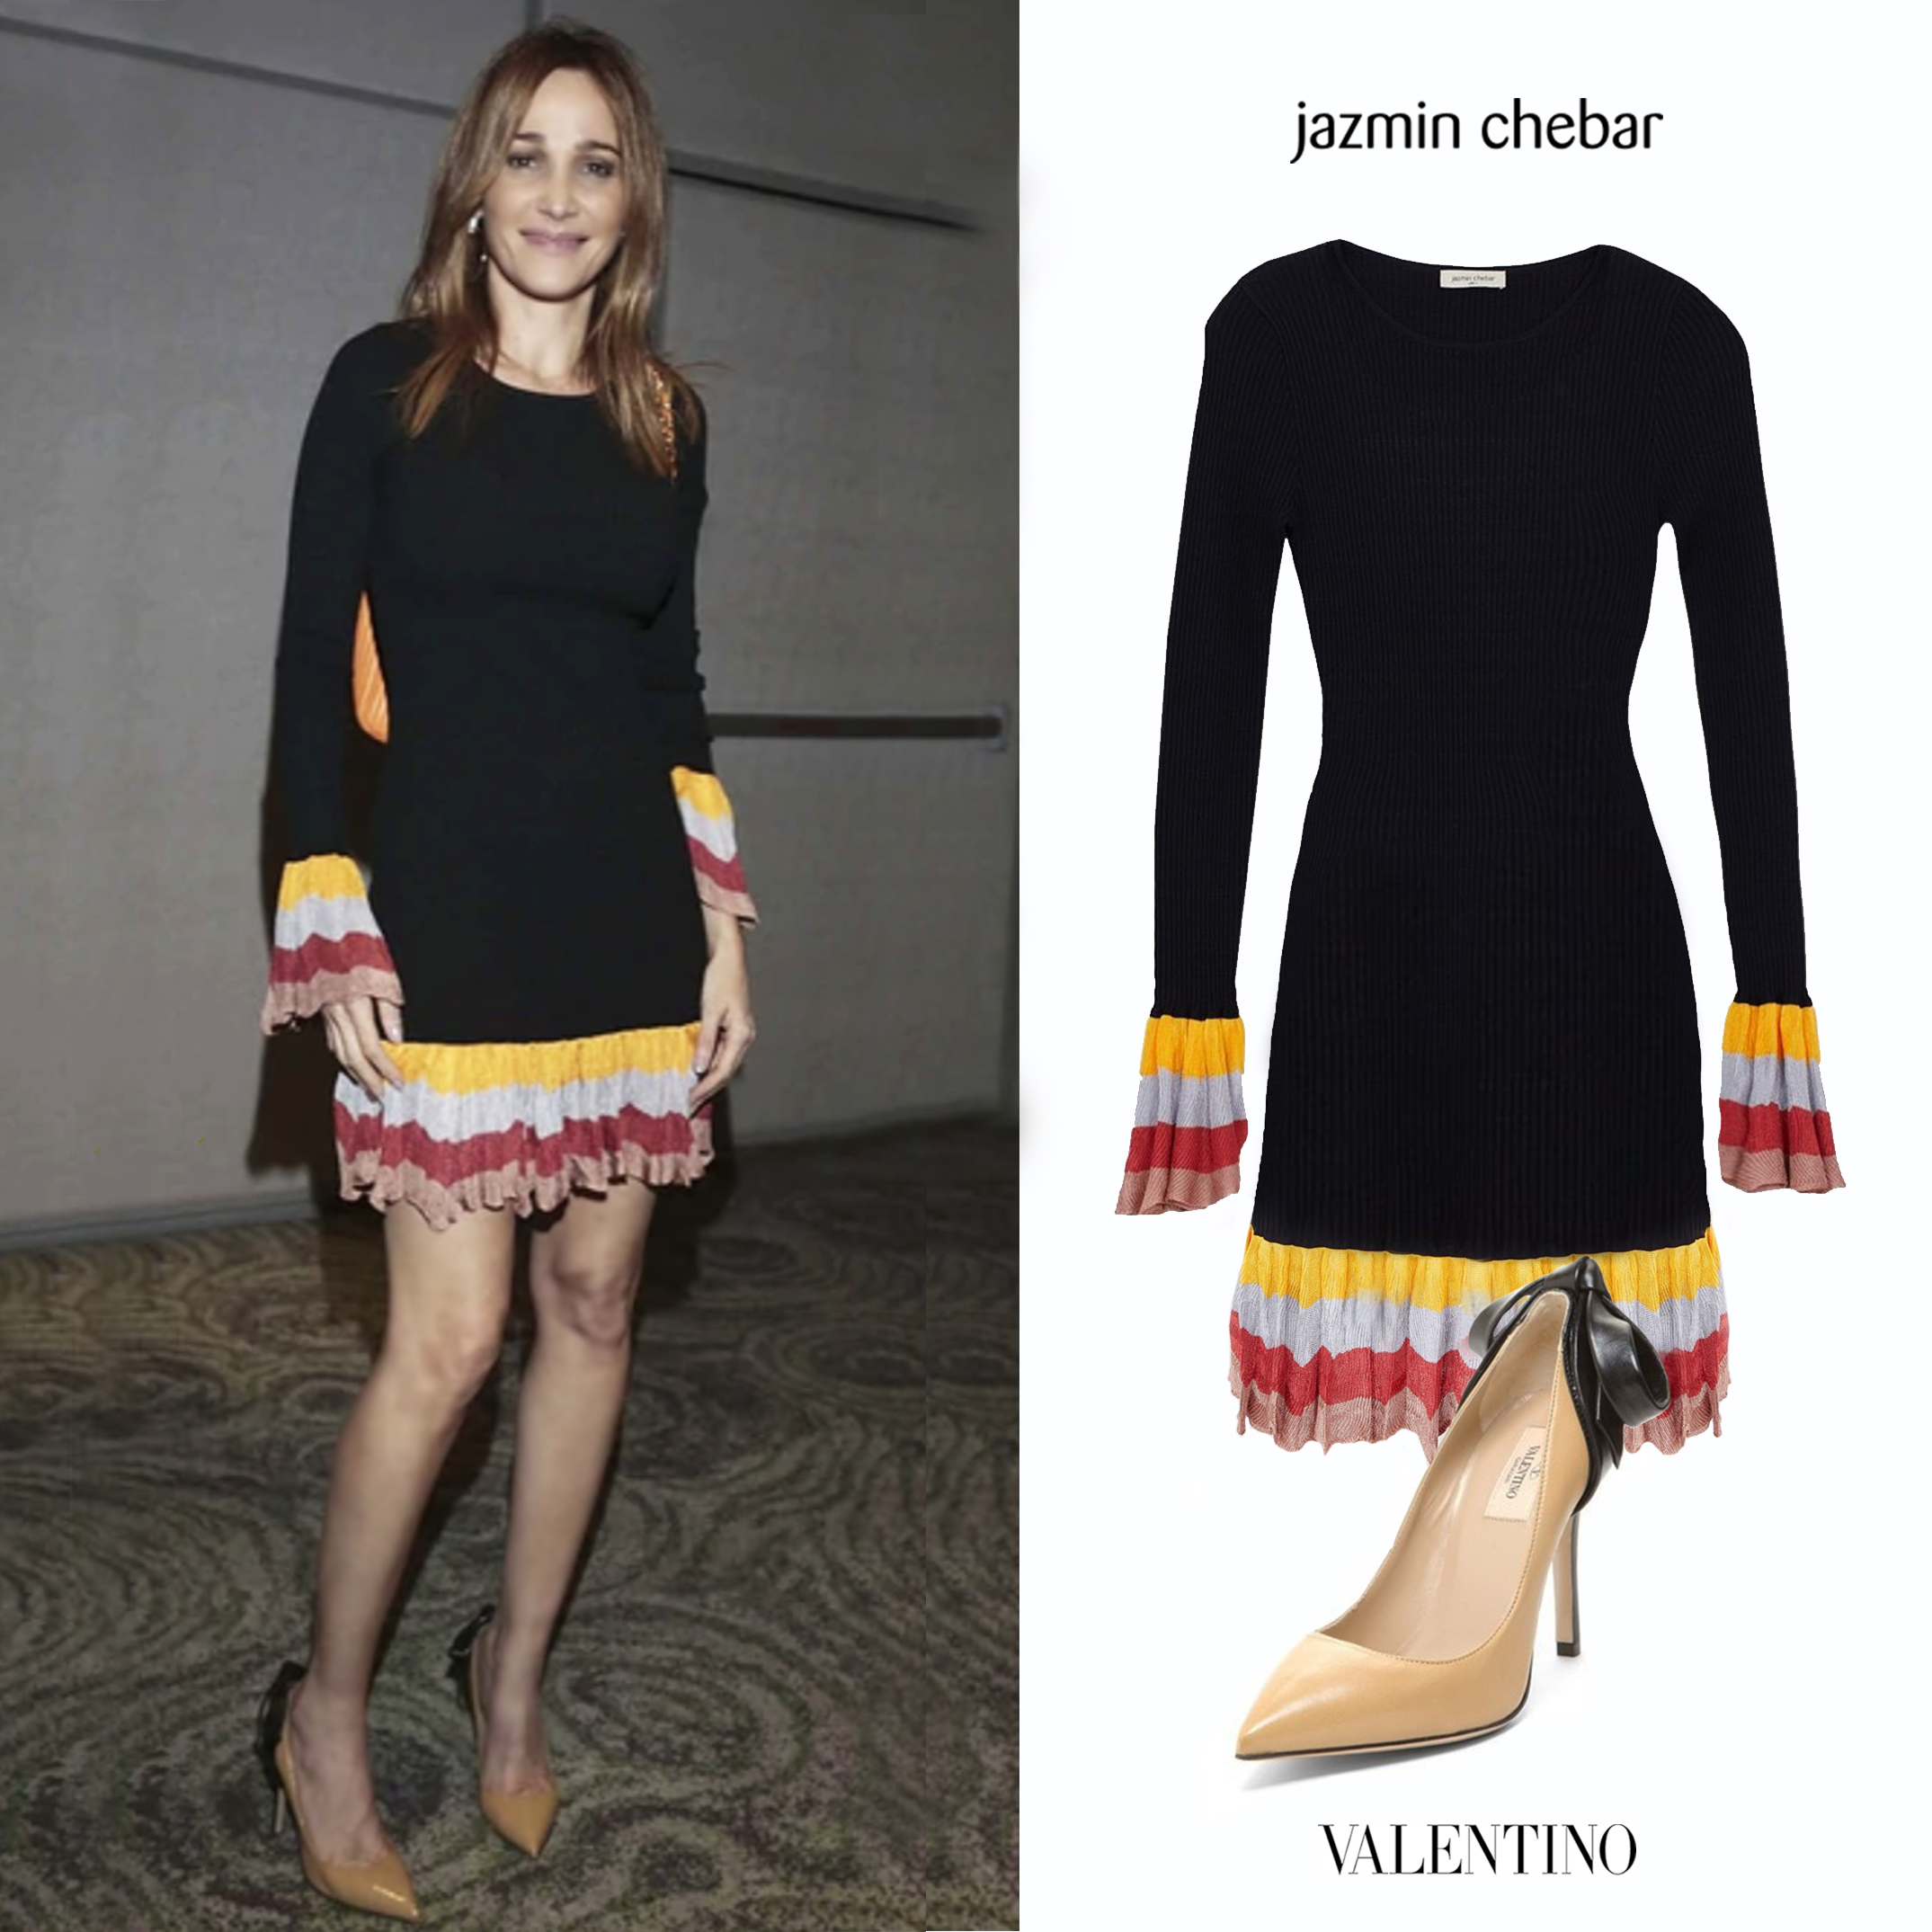 Vero_Veronica_Lozano_Martin_Fierro_Diplomas_Vestido_Negro_Colores_Cuba_Jazmin_Chebar_Invierno_2018_Dress_Black_Zapatos_Valentino_Beige_Brown_Black_Row_Back_Pumps_Zapatos_Monio_Negro_Marron.jpg